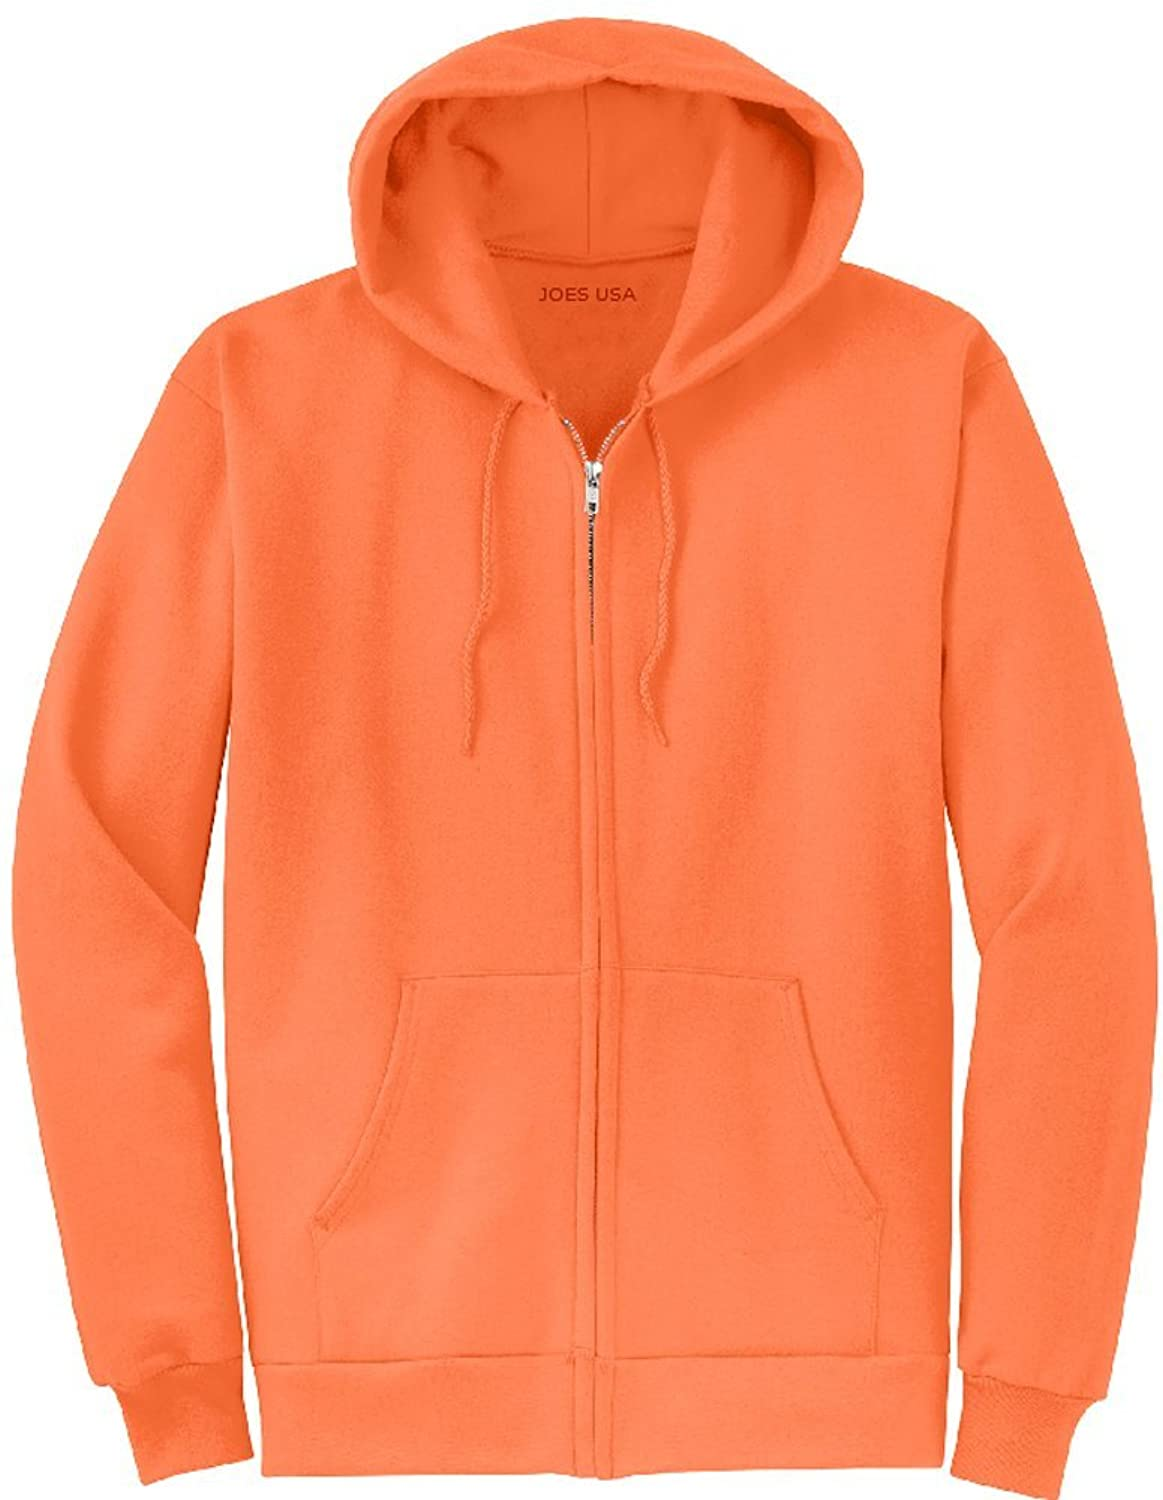 577e3b43 Joe\'s USA Full Zipper Hoodies - Hooded Sweatshirts in 28 Colors. Sizes  S-4XL. The Joe\'s USA Hoodie is a great hoodie can be worn alone or used as  part of ...